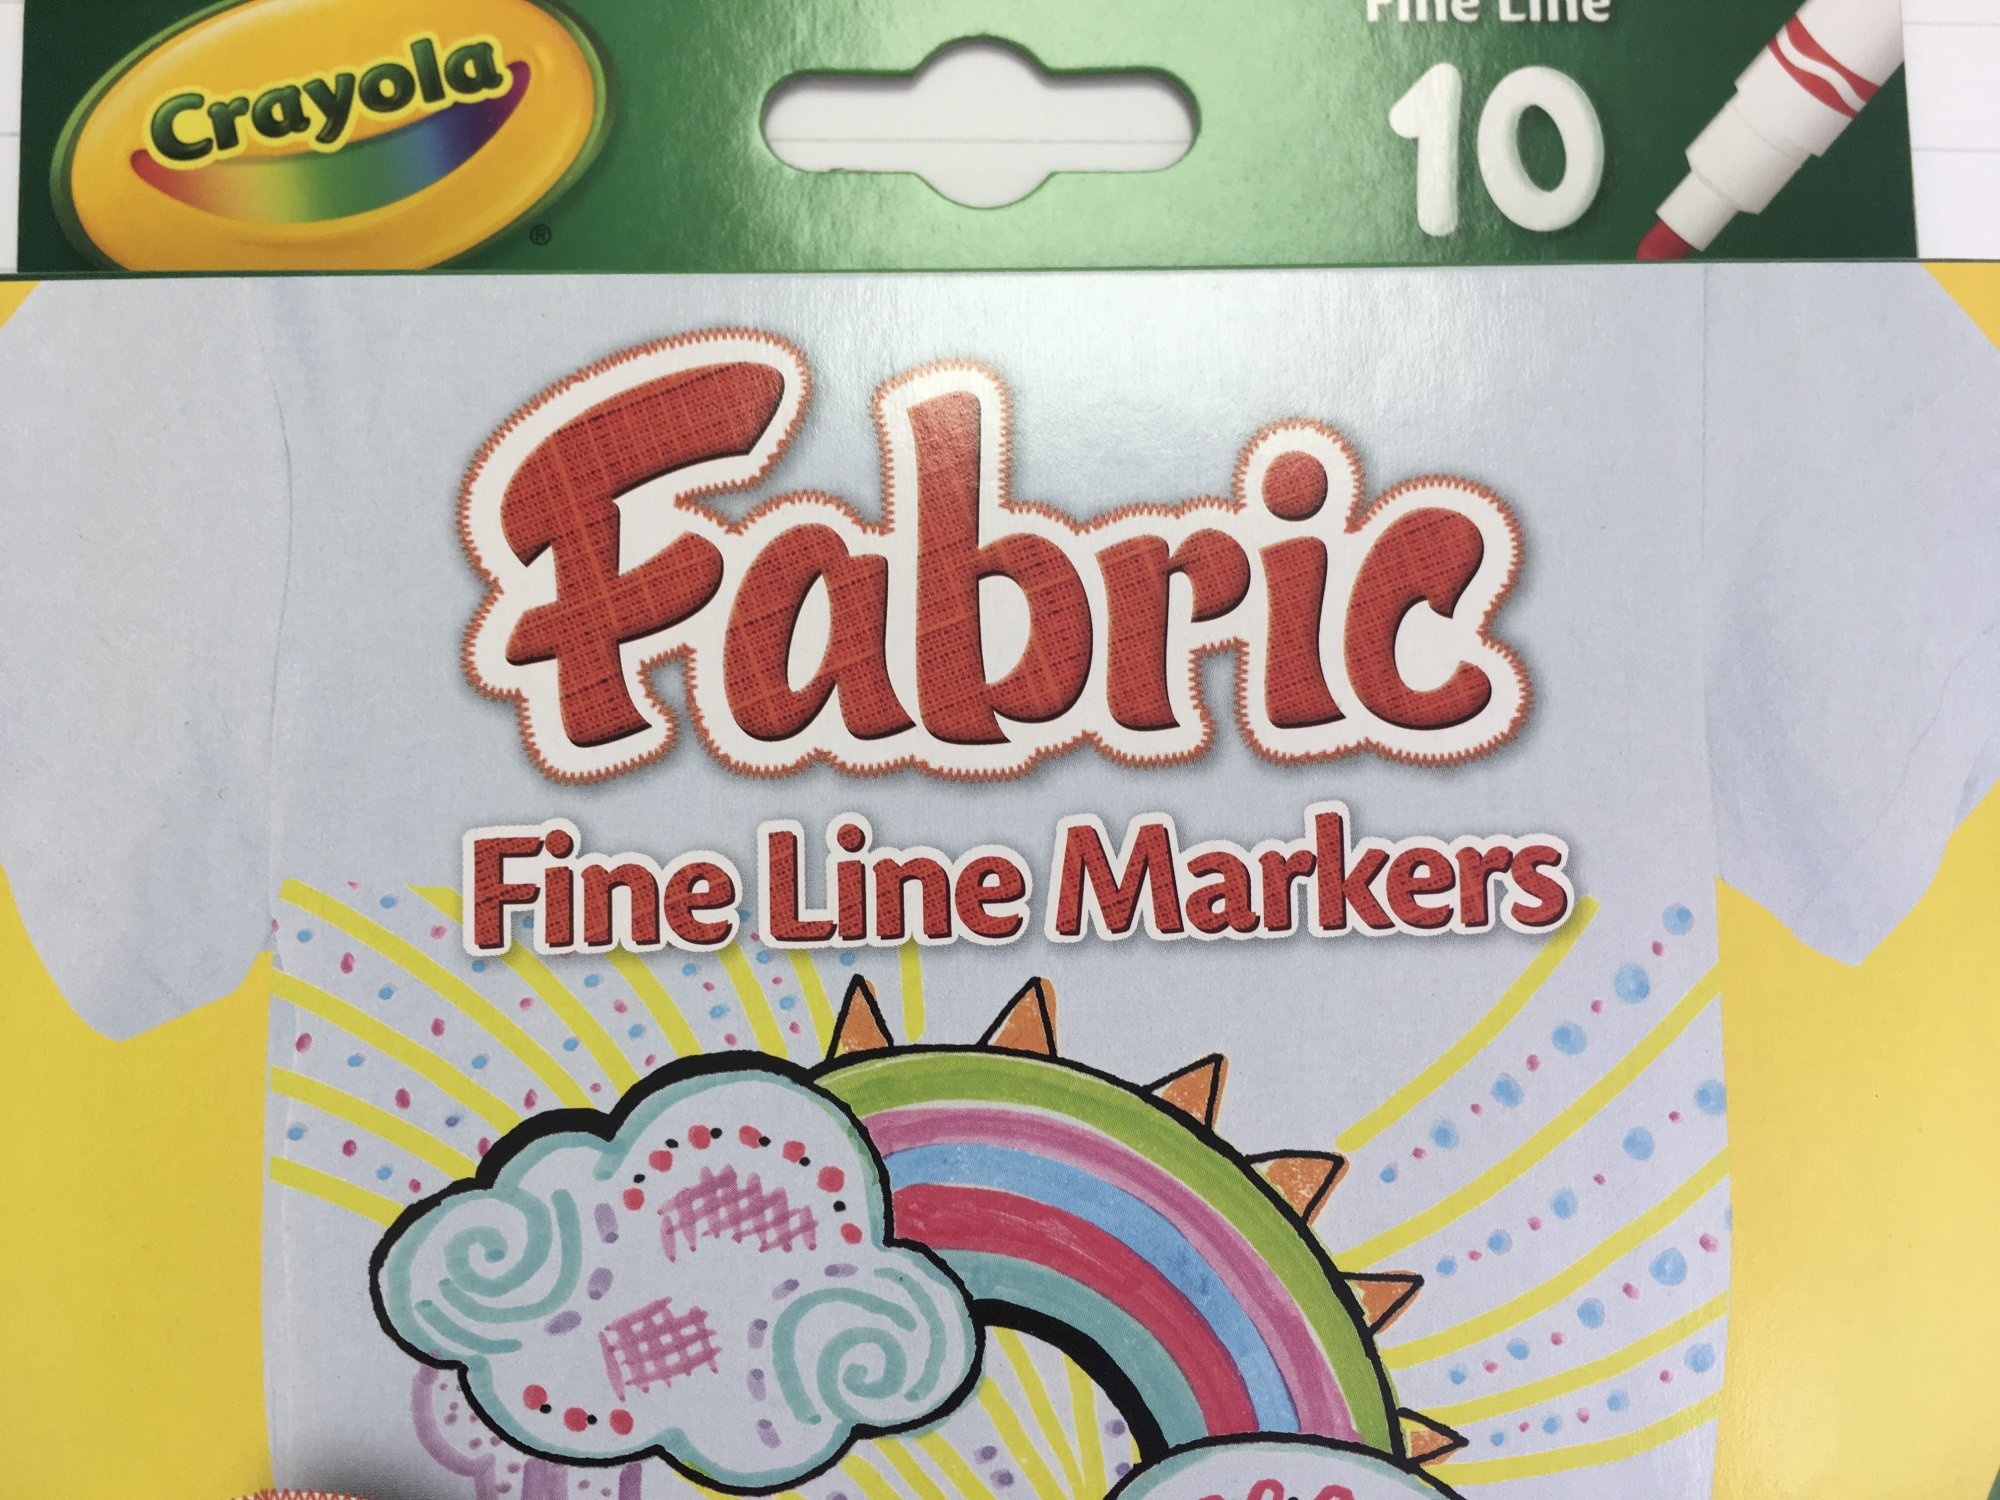 Crayola Fabric Fine Line Markers (10) L6T09